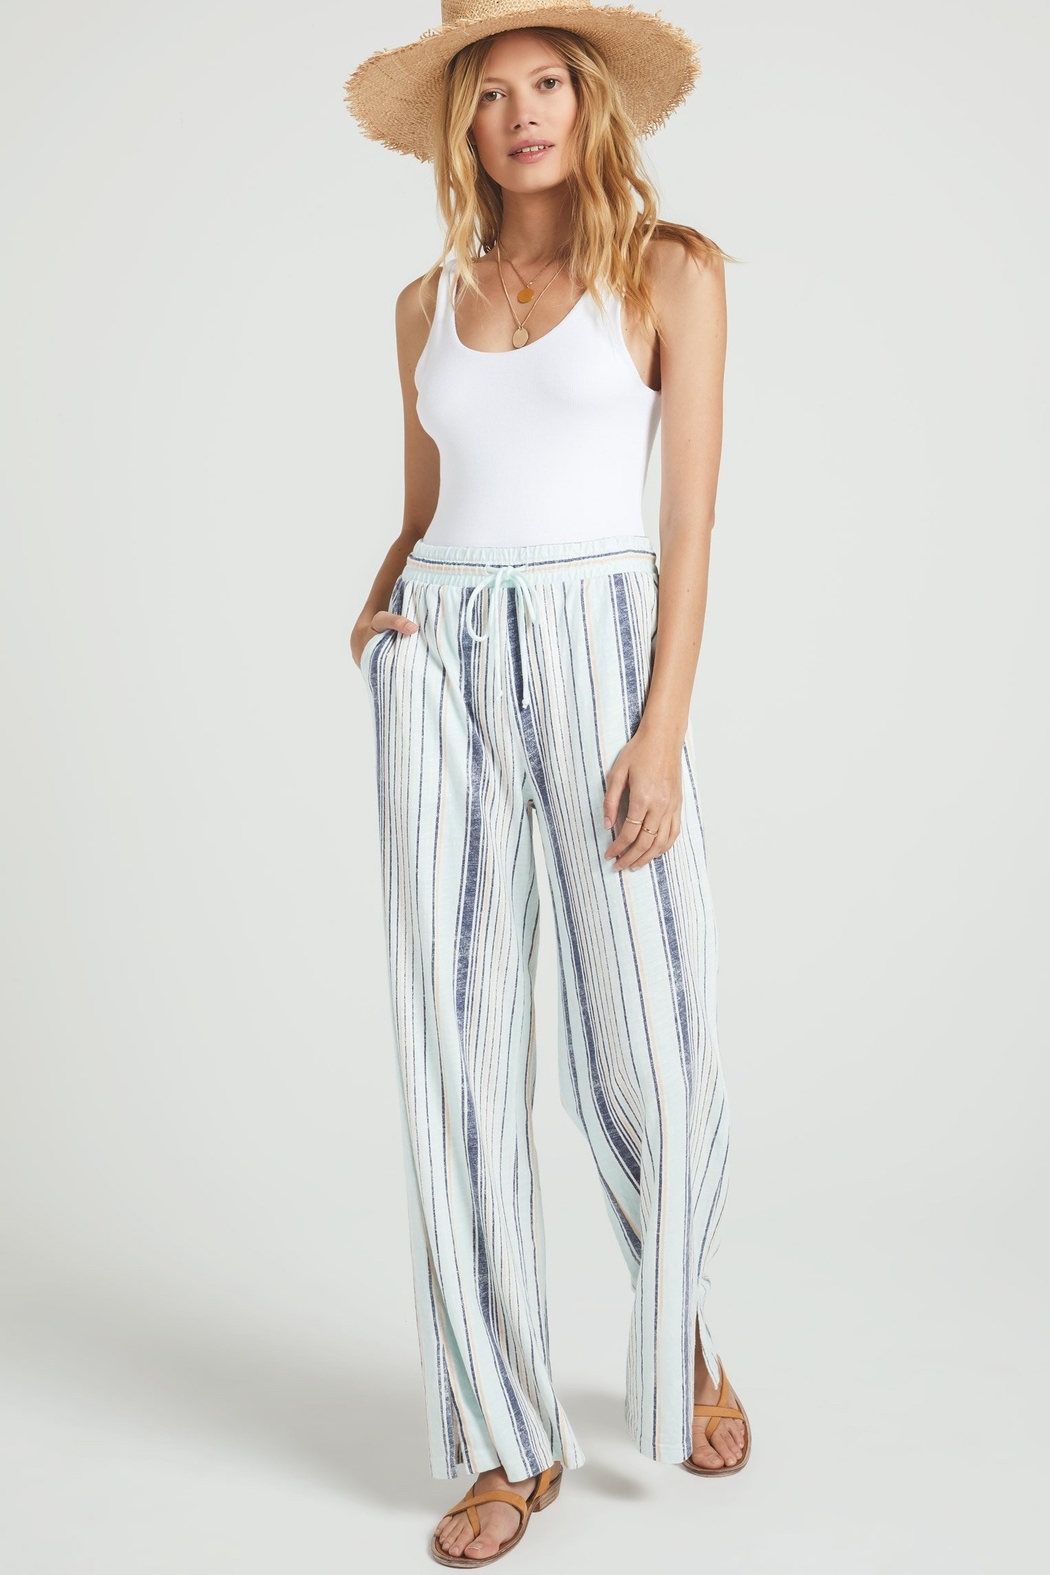 z supply Hana Stripe Pant - Front Cropped Image